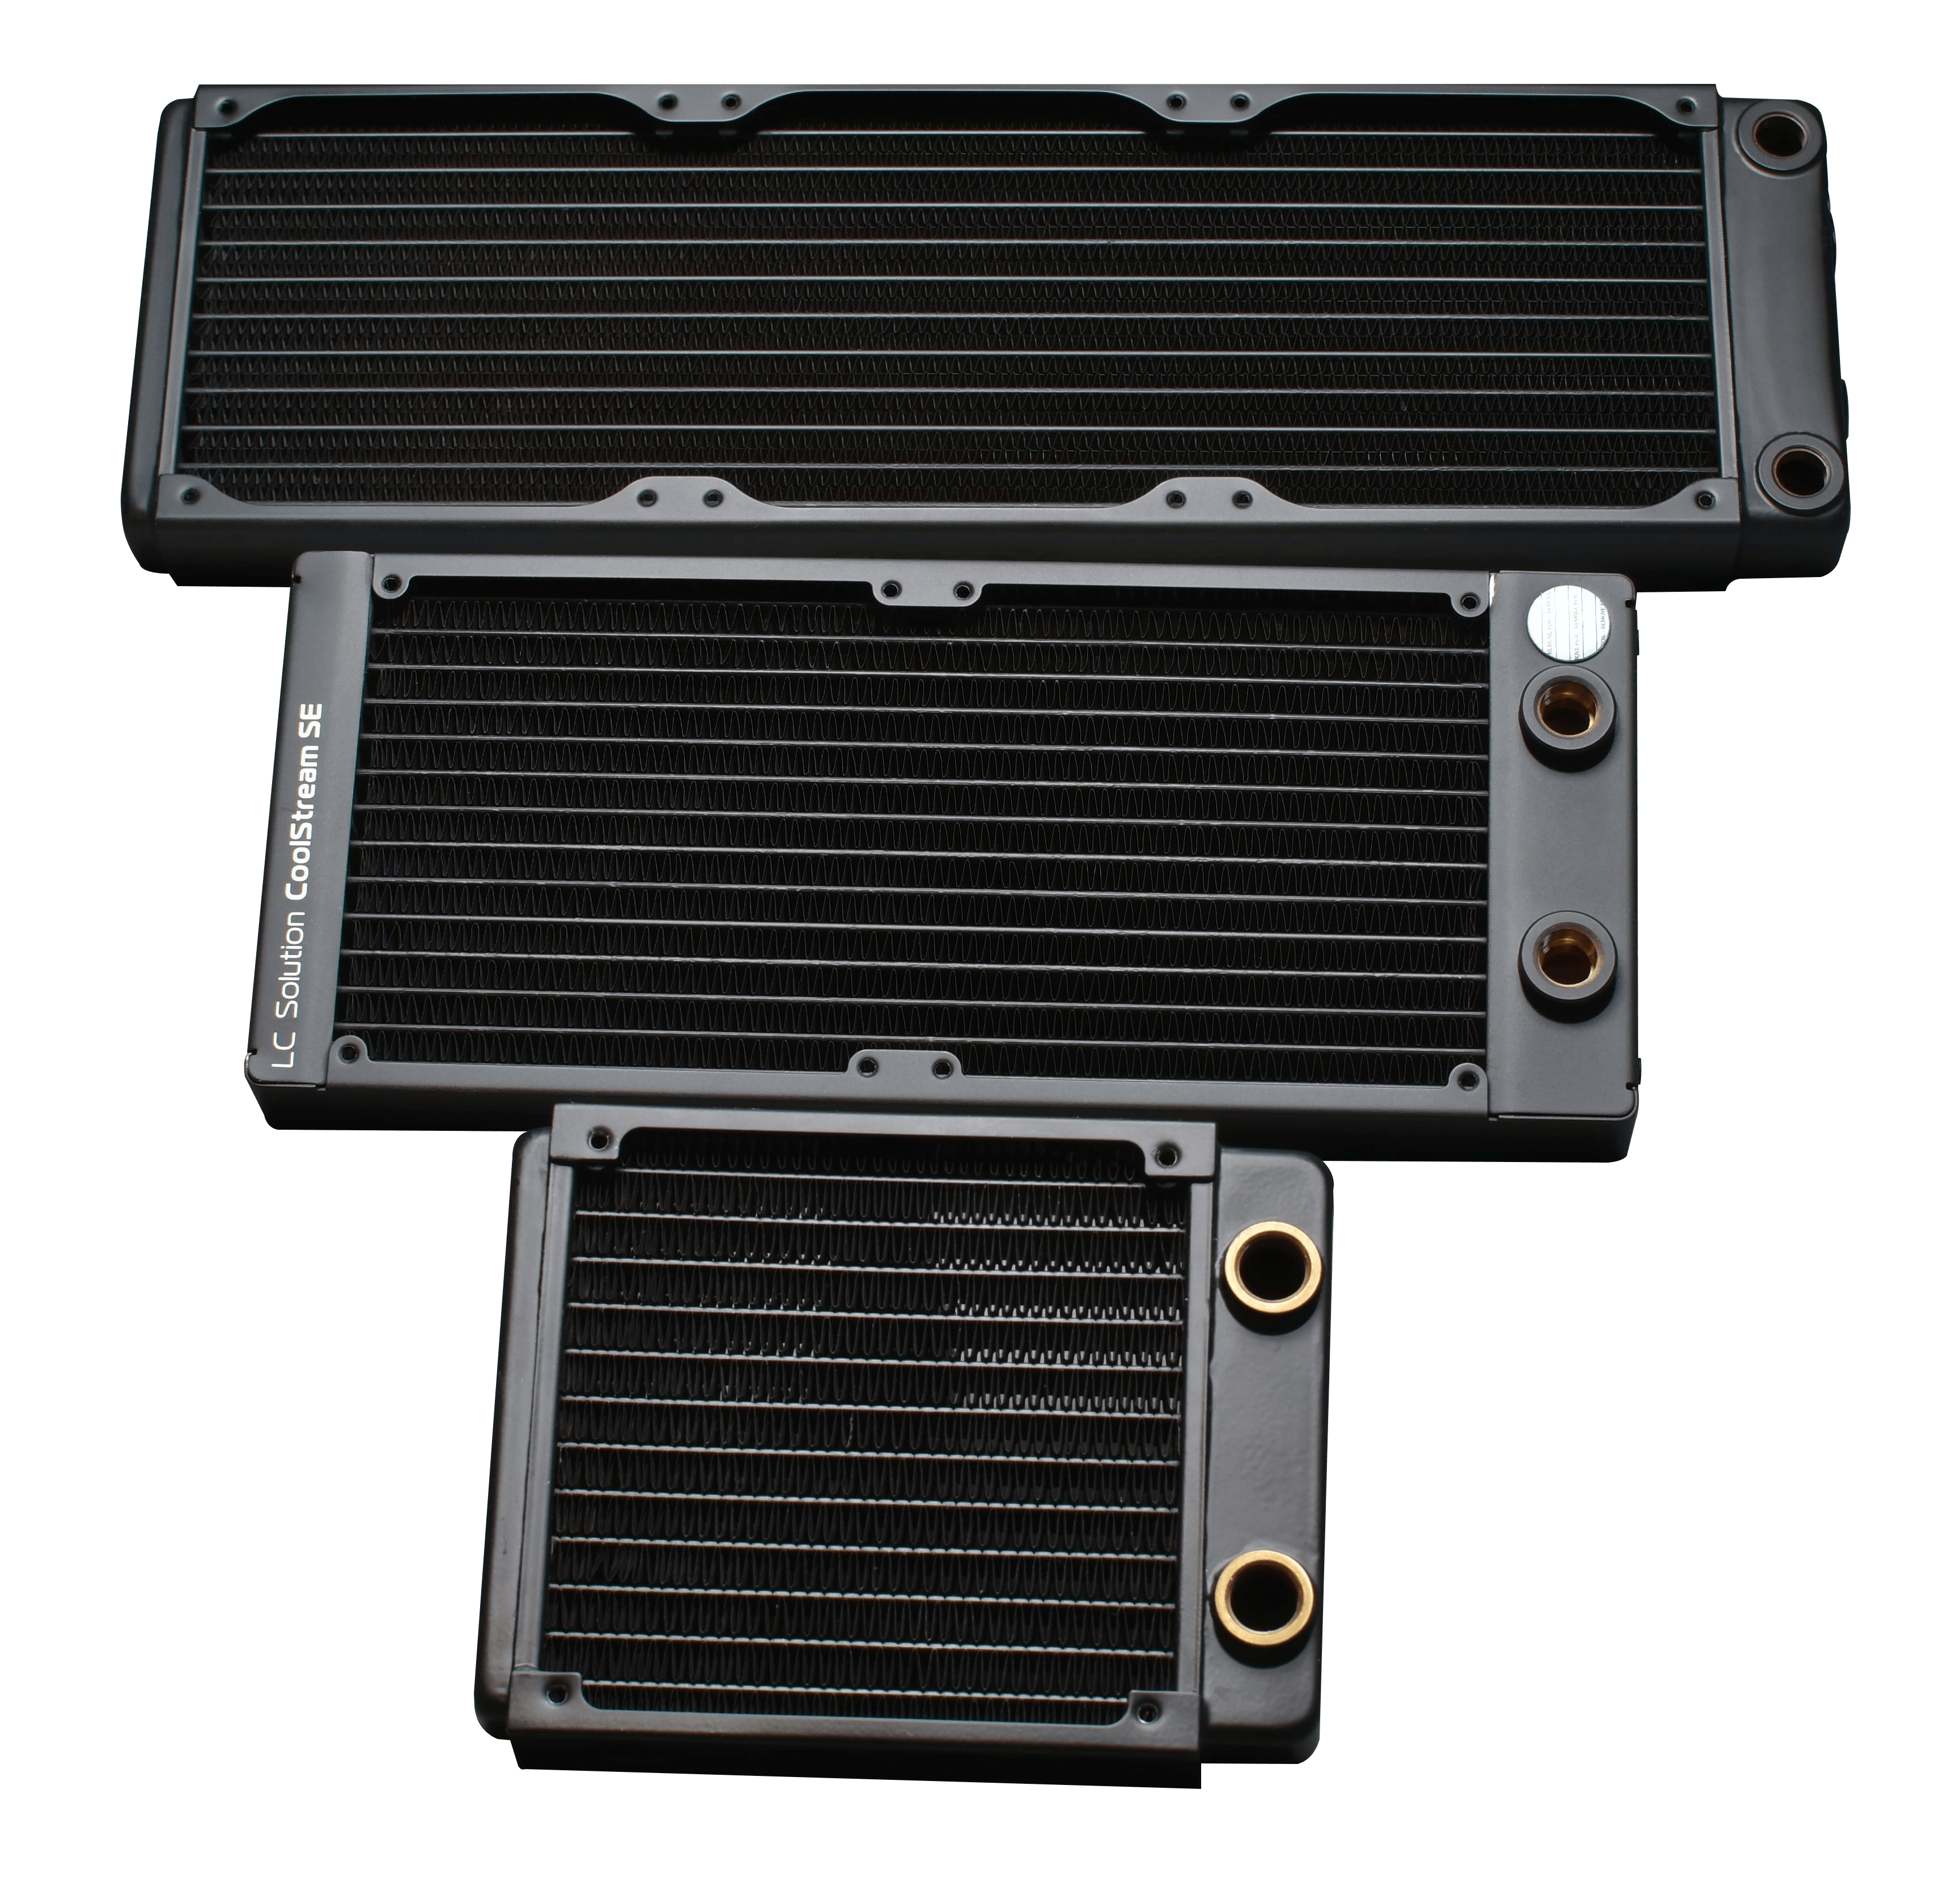 PC water cooling radiators in their most common sizes.